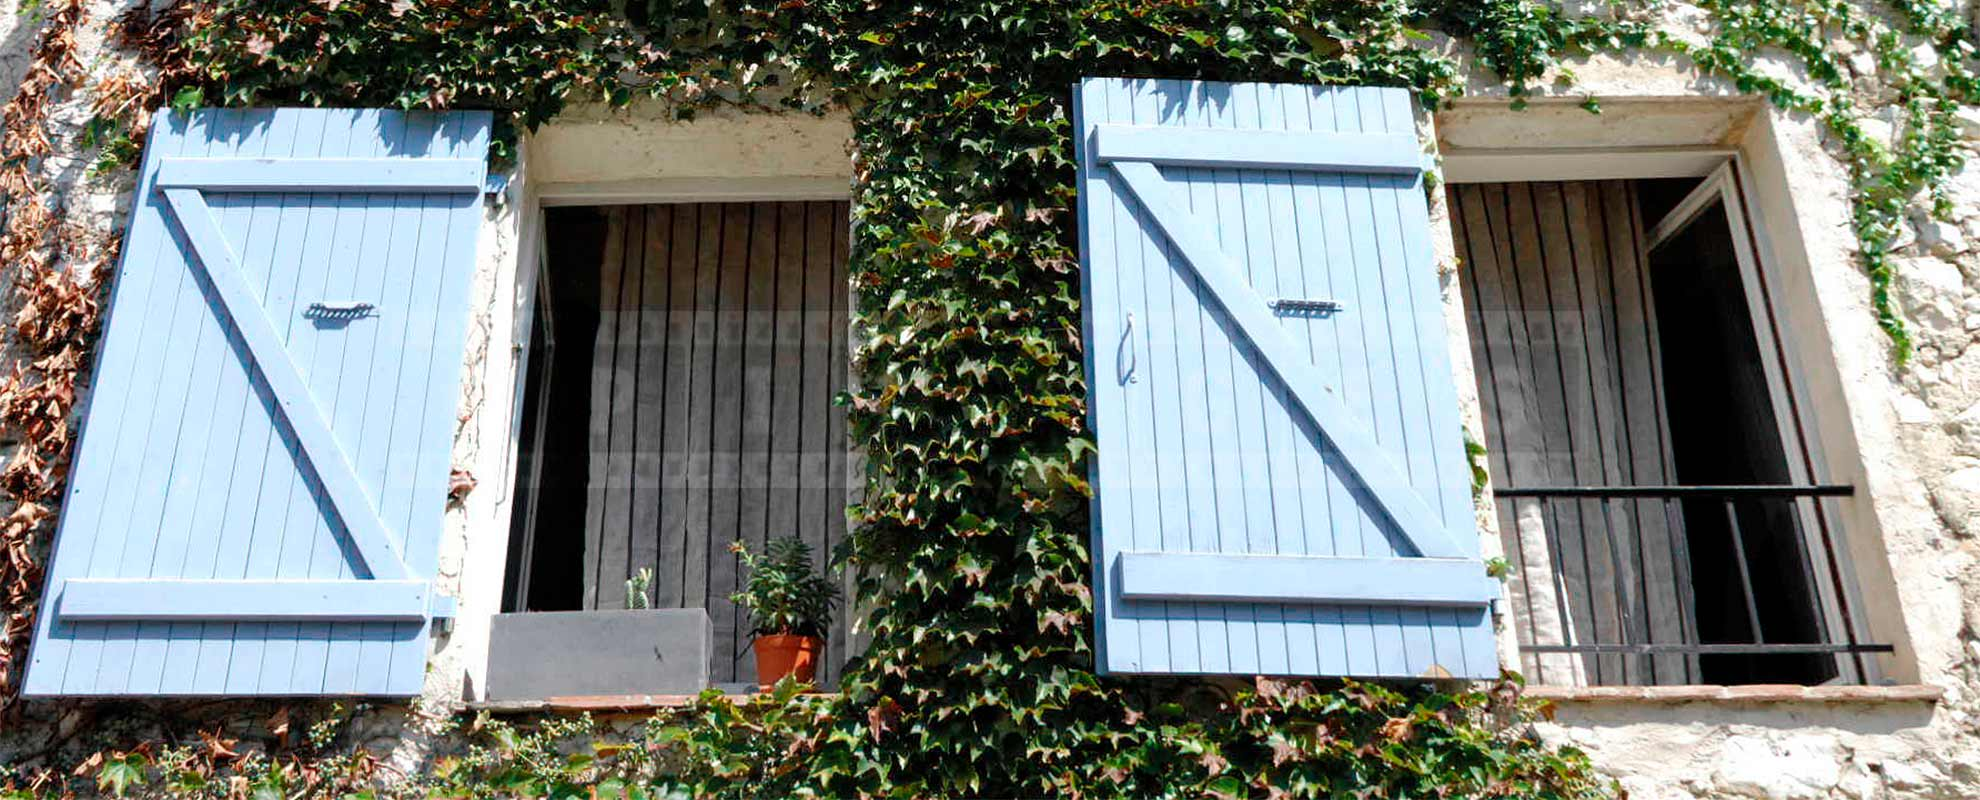 French style windows with blue shutters and green vine